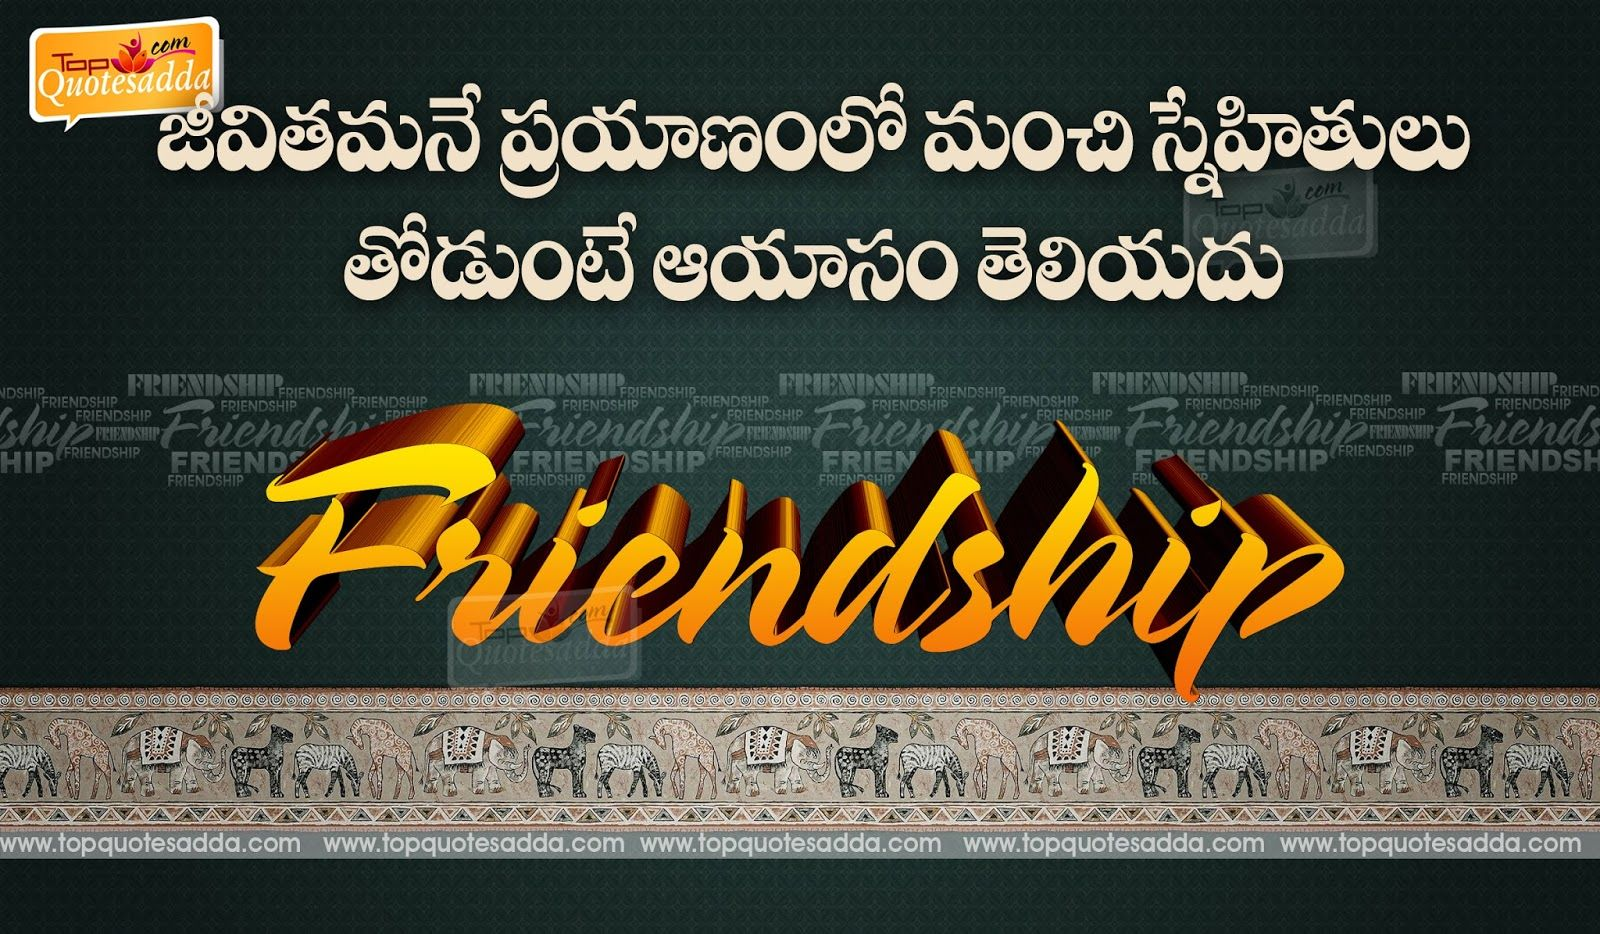 Turkish Quotes About Friendship Inspirational Sayings In Telugu About Life Best Friendship Telugu